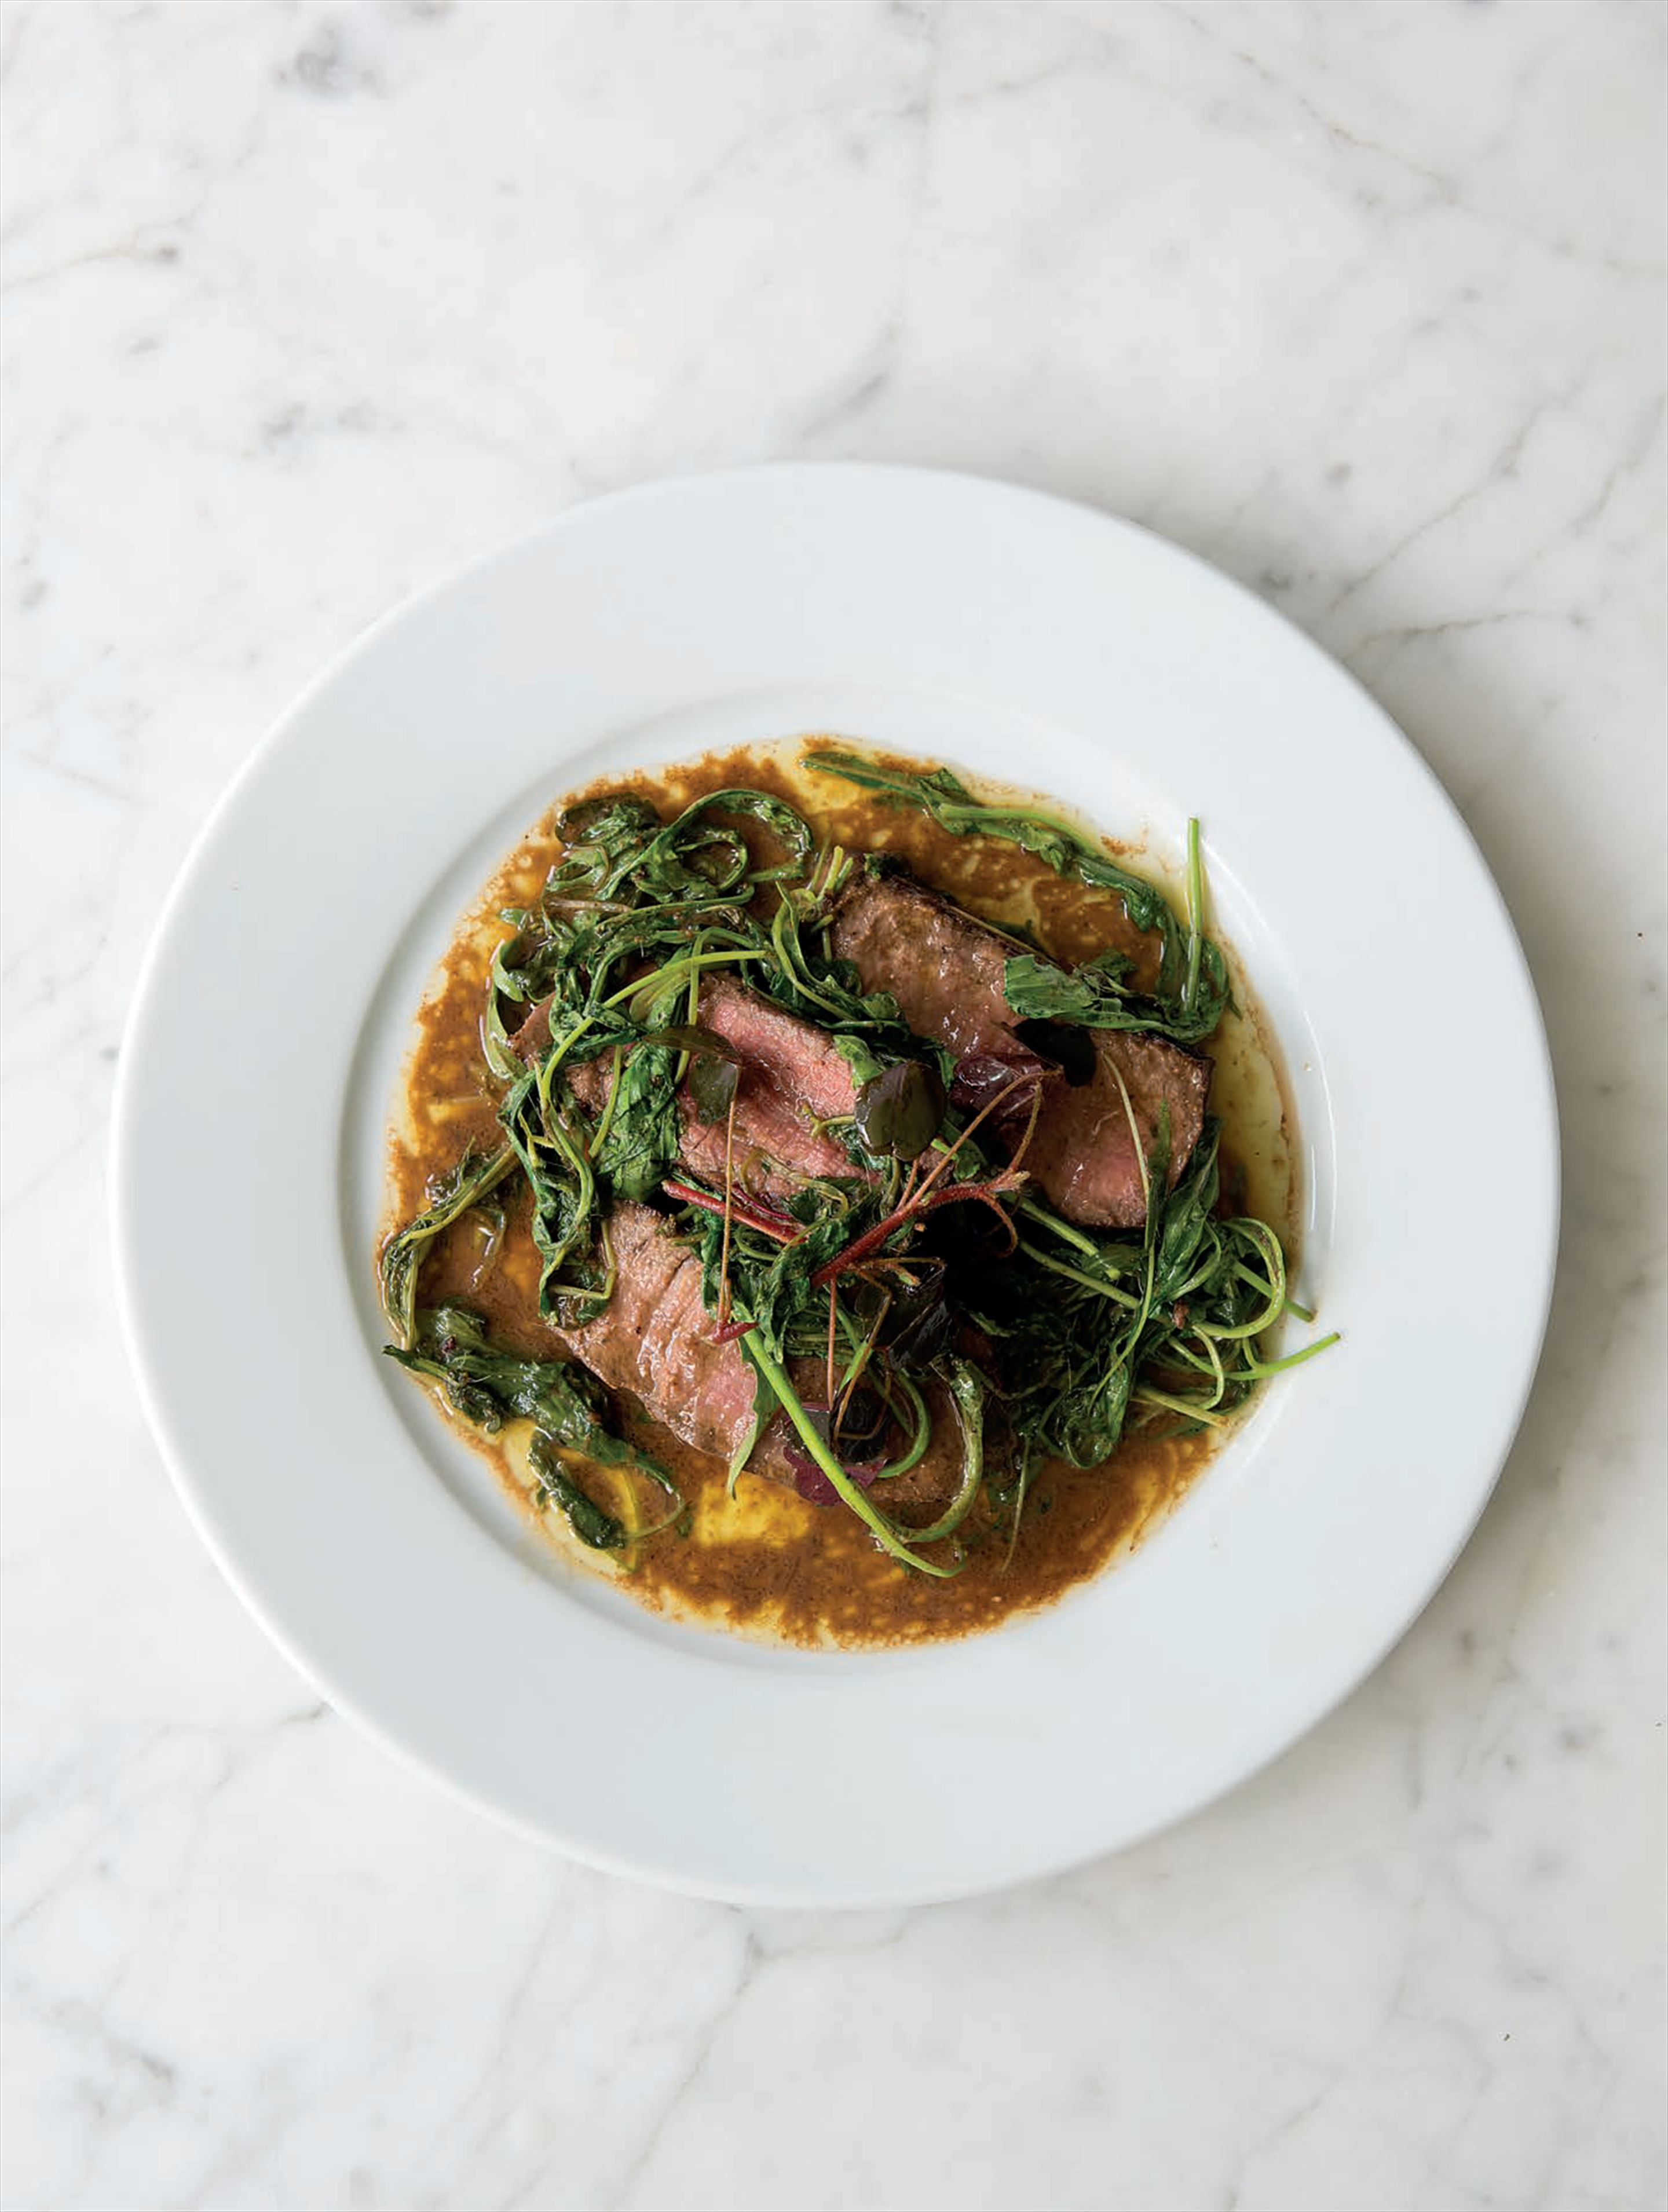 Fillet of beef with anchovy, brown butter and wild greens